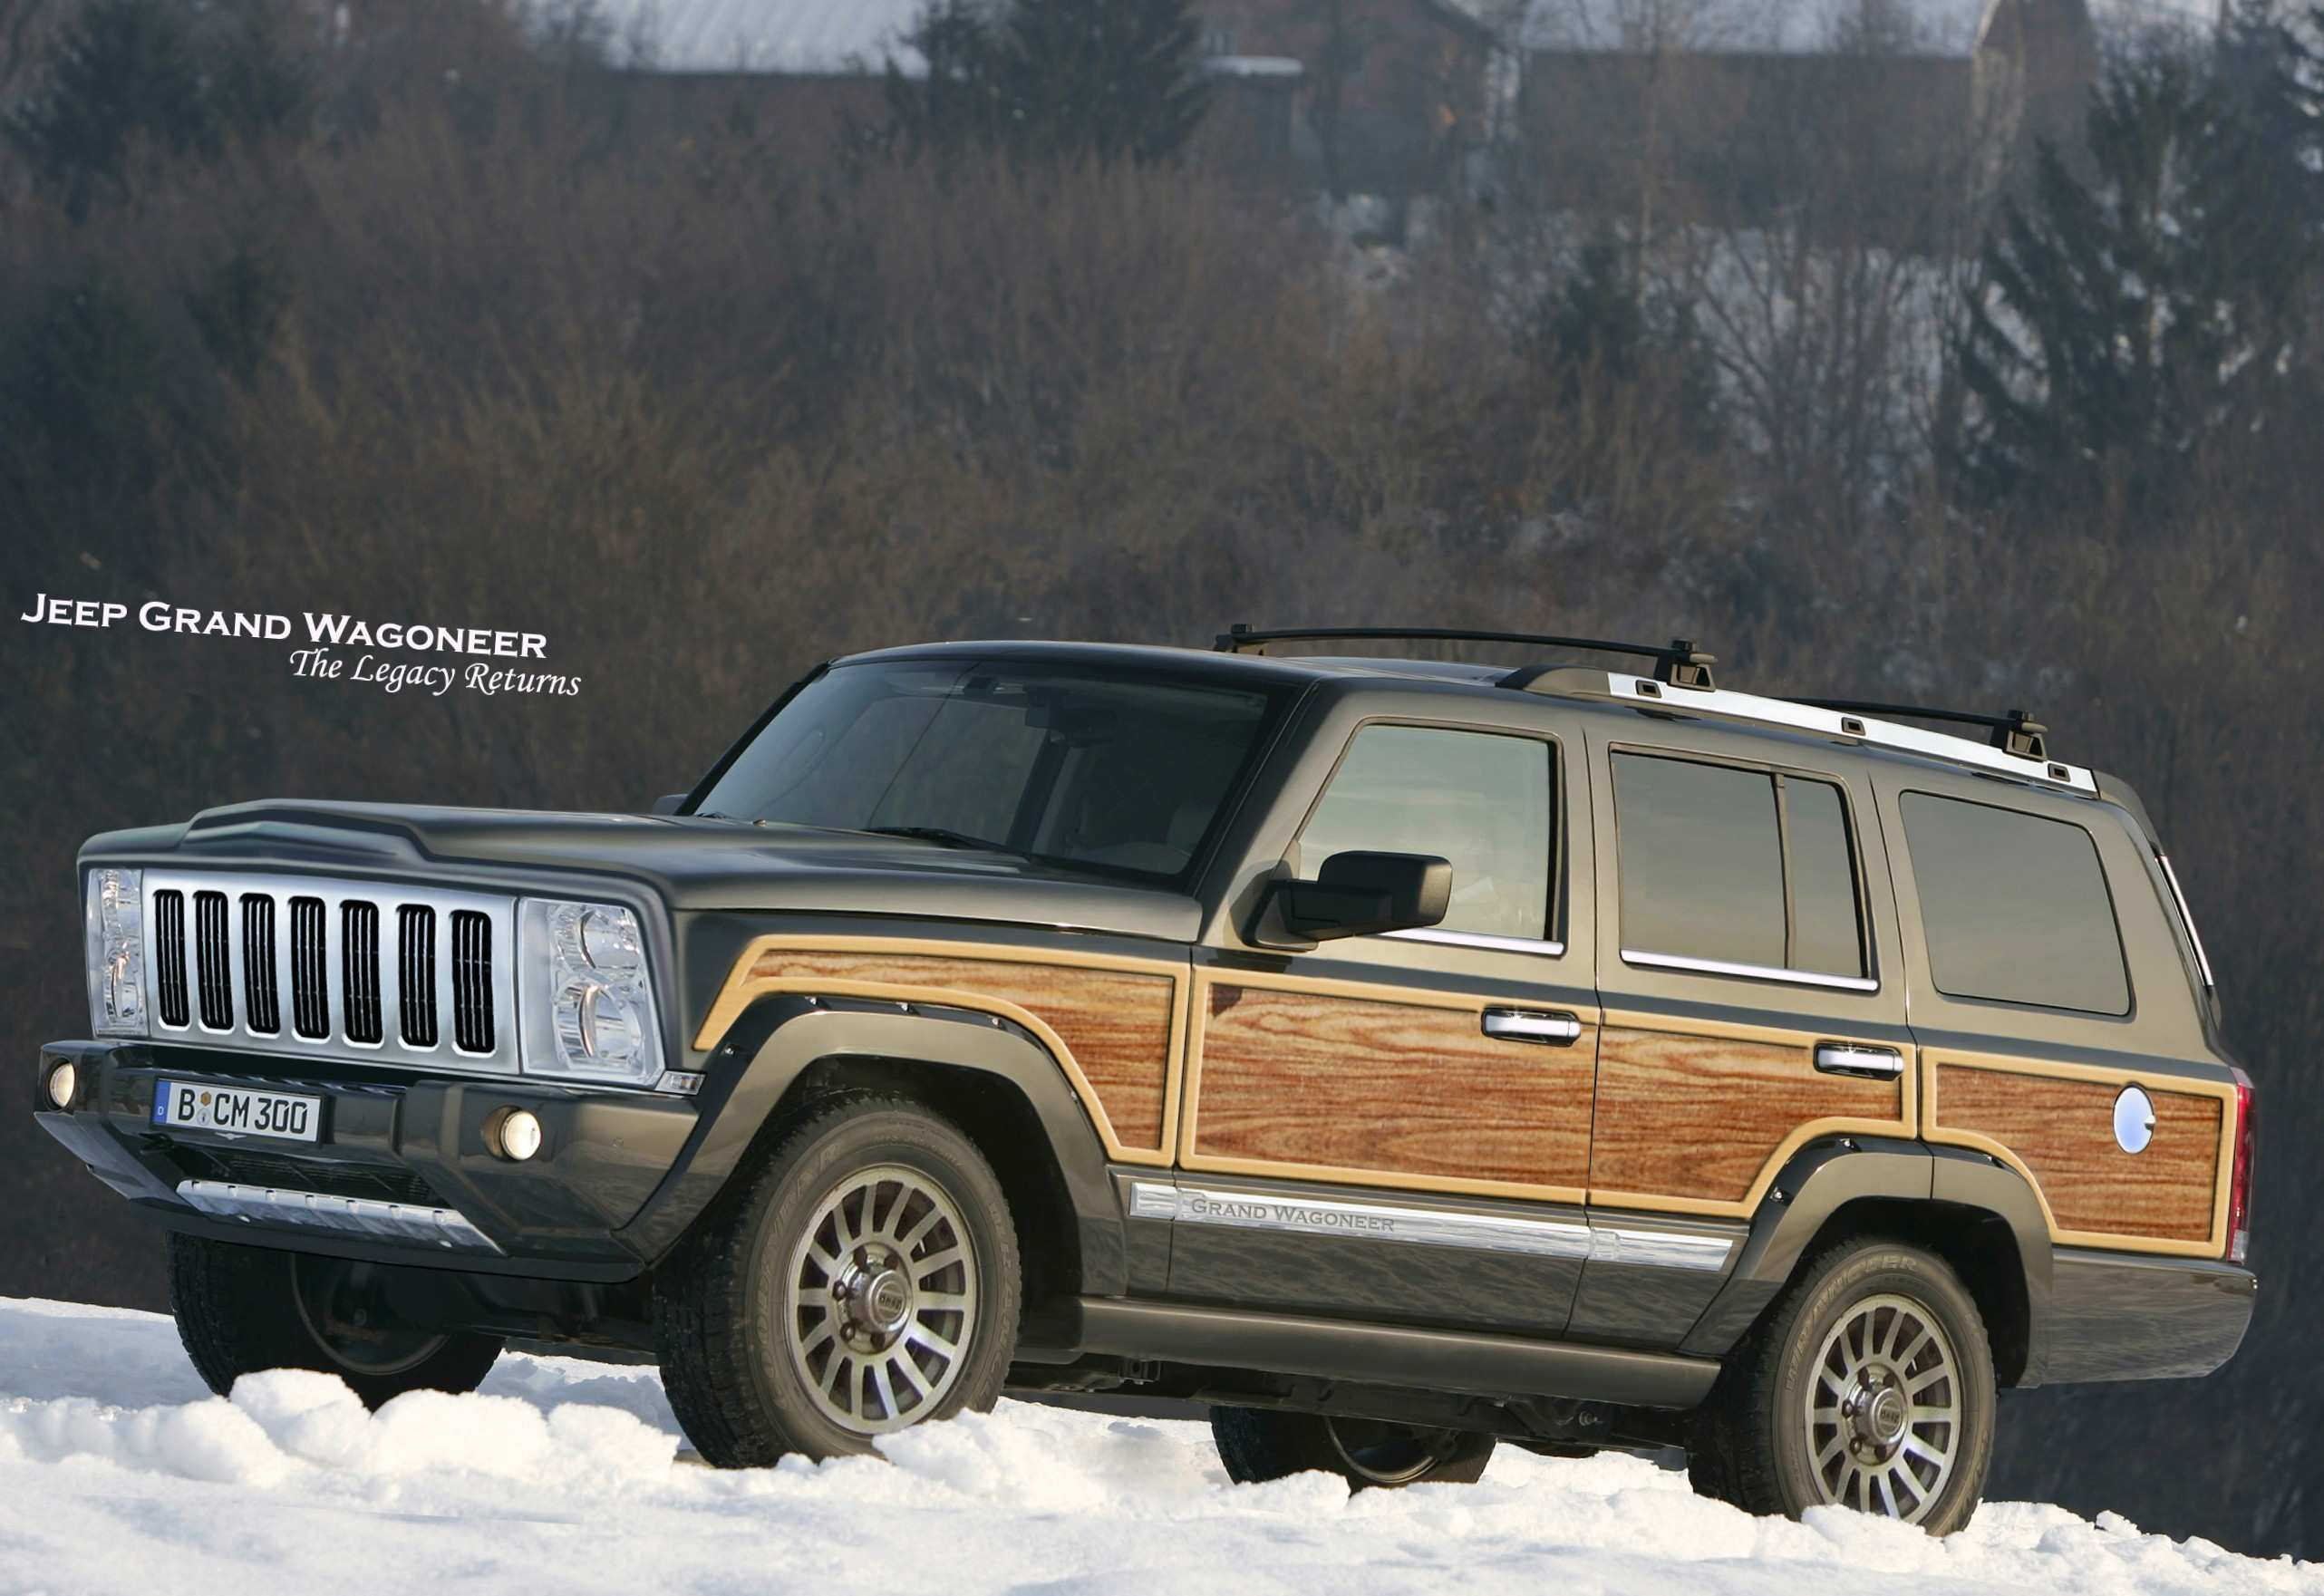 55 Best Review 2020 Jeep Grand Wagoneer Research New for 2020 Jeep Grand Wagoneer